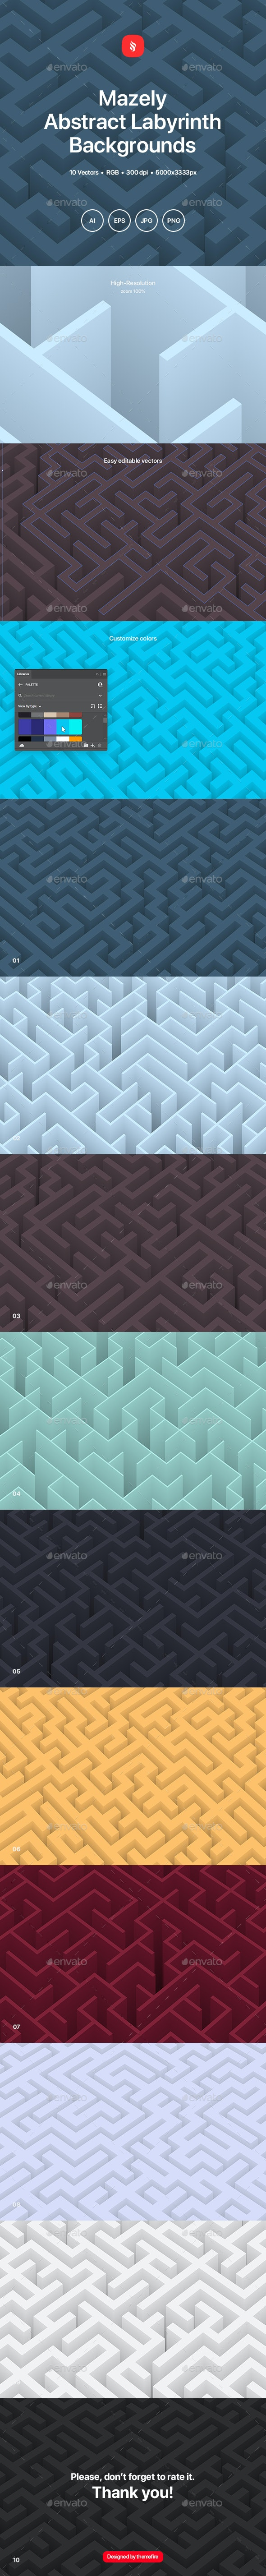 Mazely - Abstract Labyrinth Background Set - Abstract Backgrounds